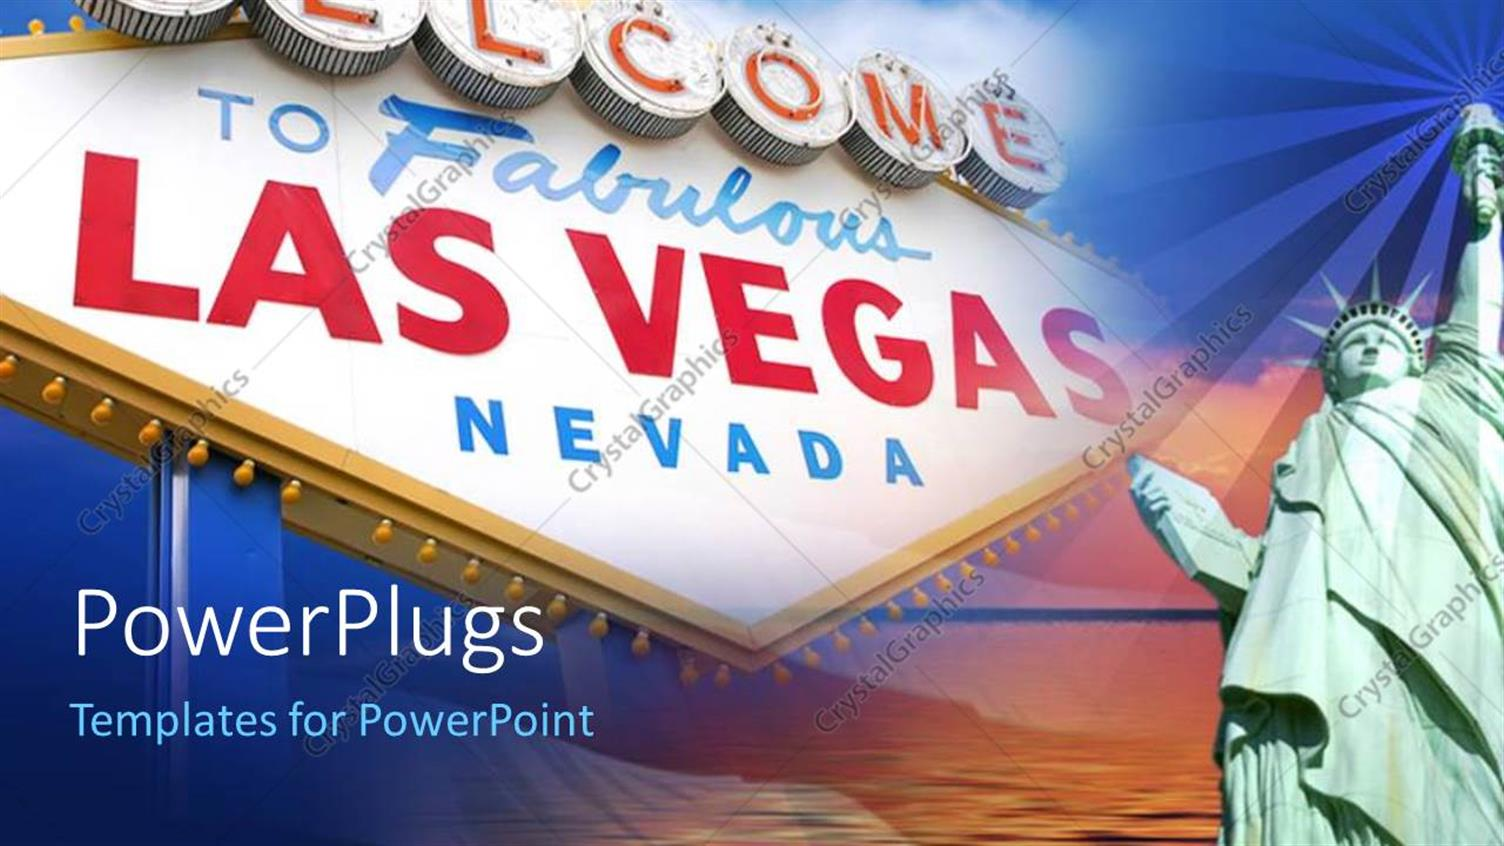 PowerPoint Template Displaying Bill Board Welcoming to Las Vegas, Nevada with Airplane in Sky